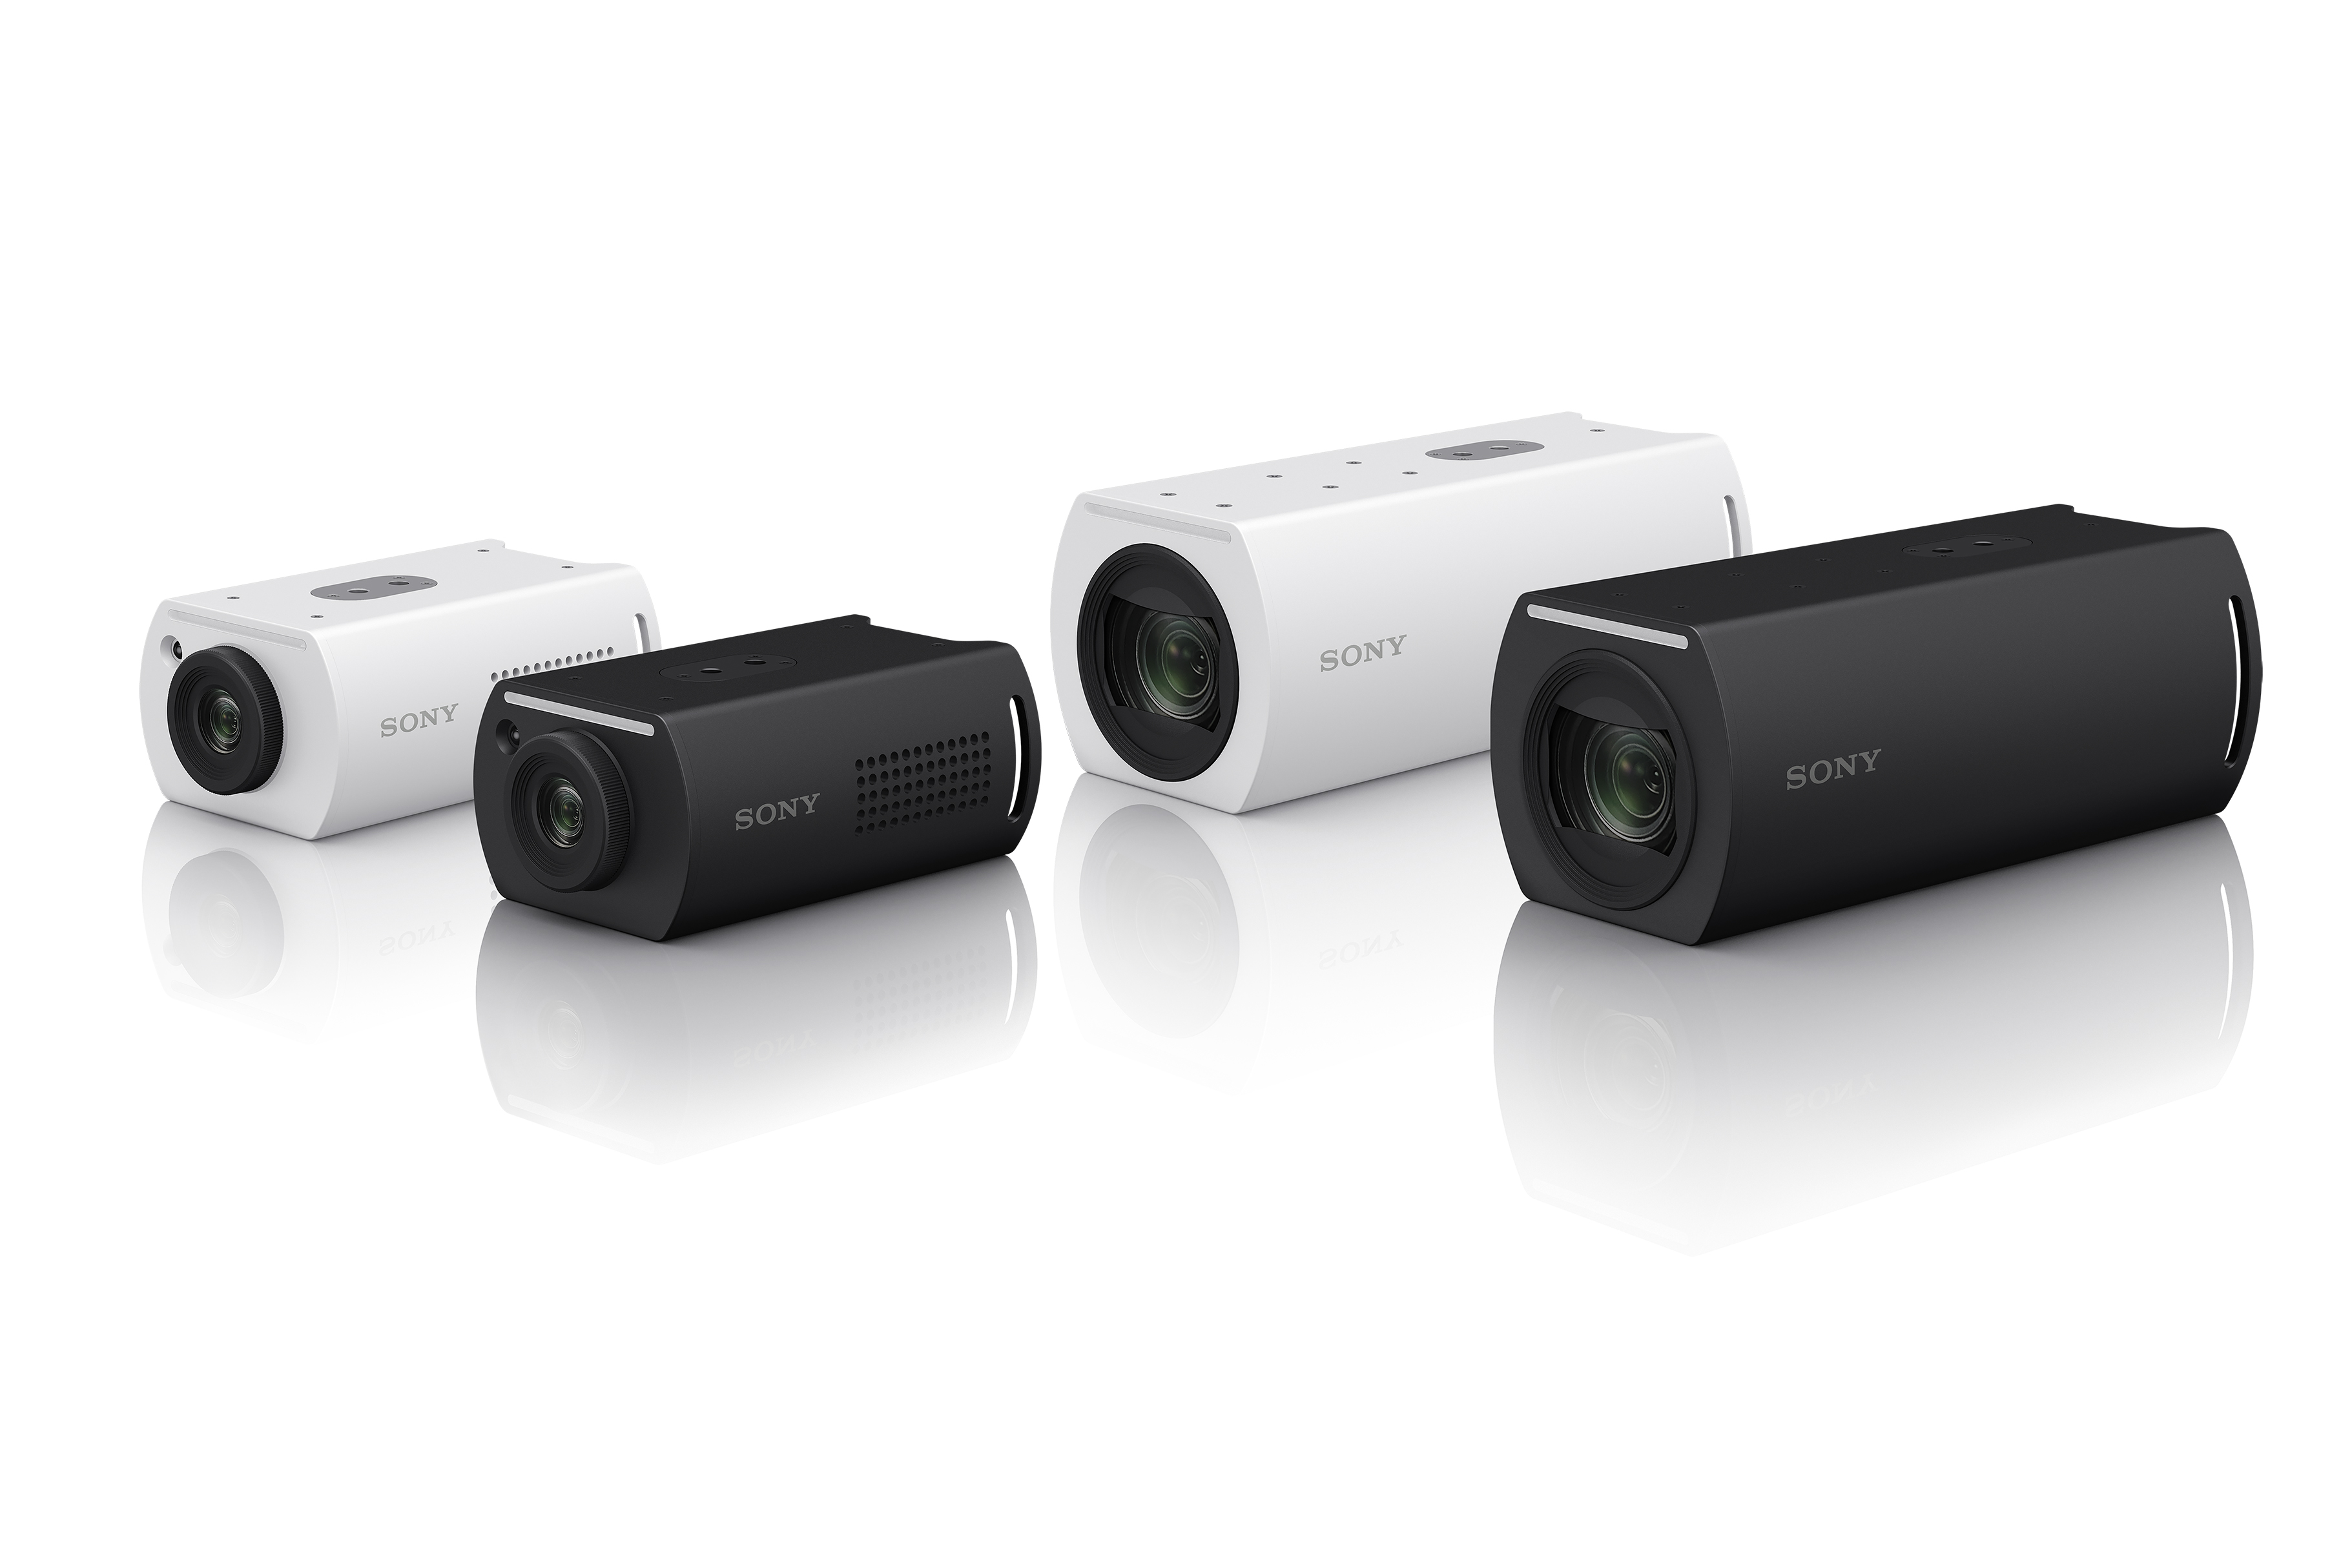 Sony Introduces Optimal Flexibility in Remote Communication, Monitoring and Content Production with Latest 4K 60P Cameras